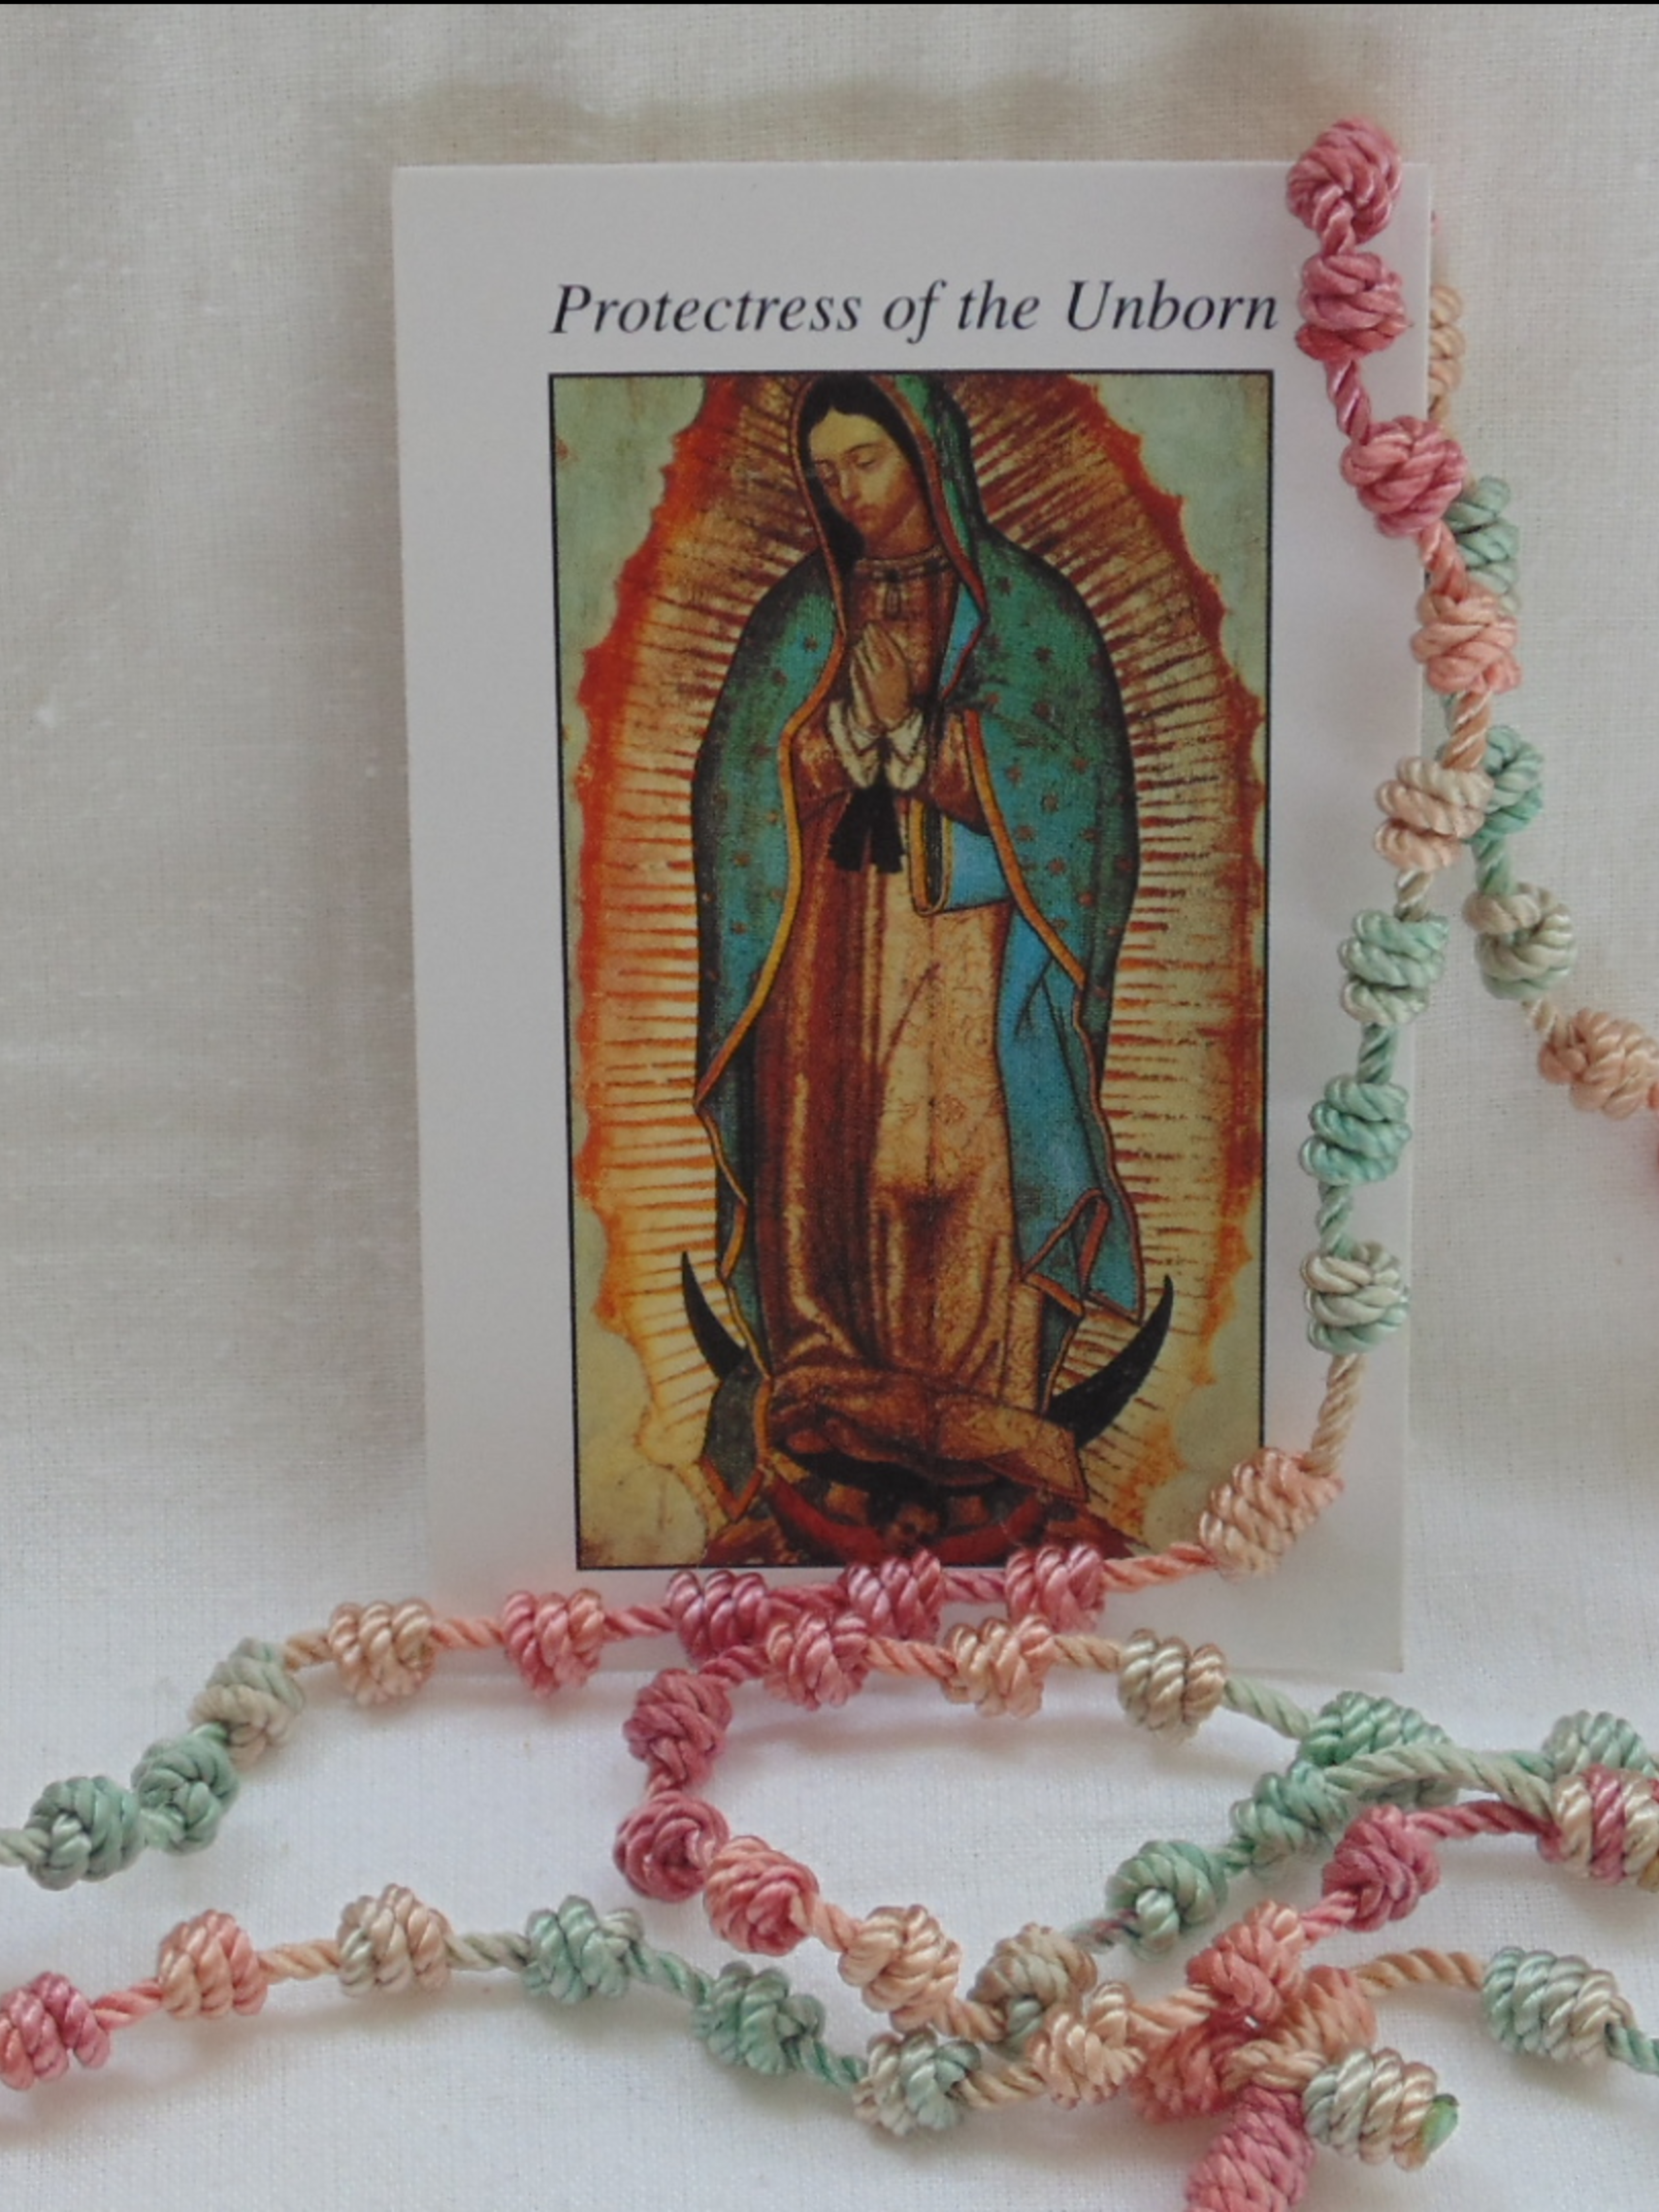 Protectress of the Unborn Prayer Card and Rosary